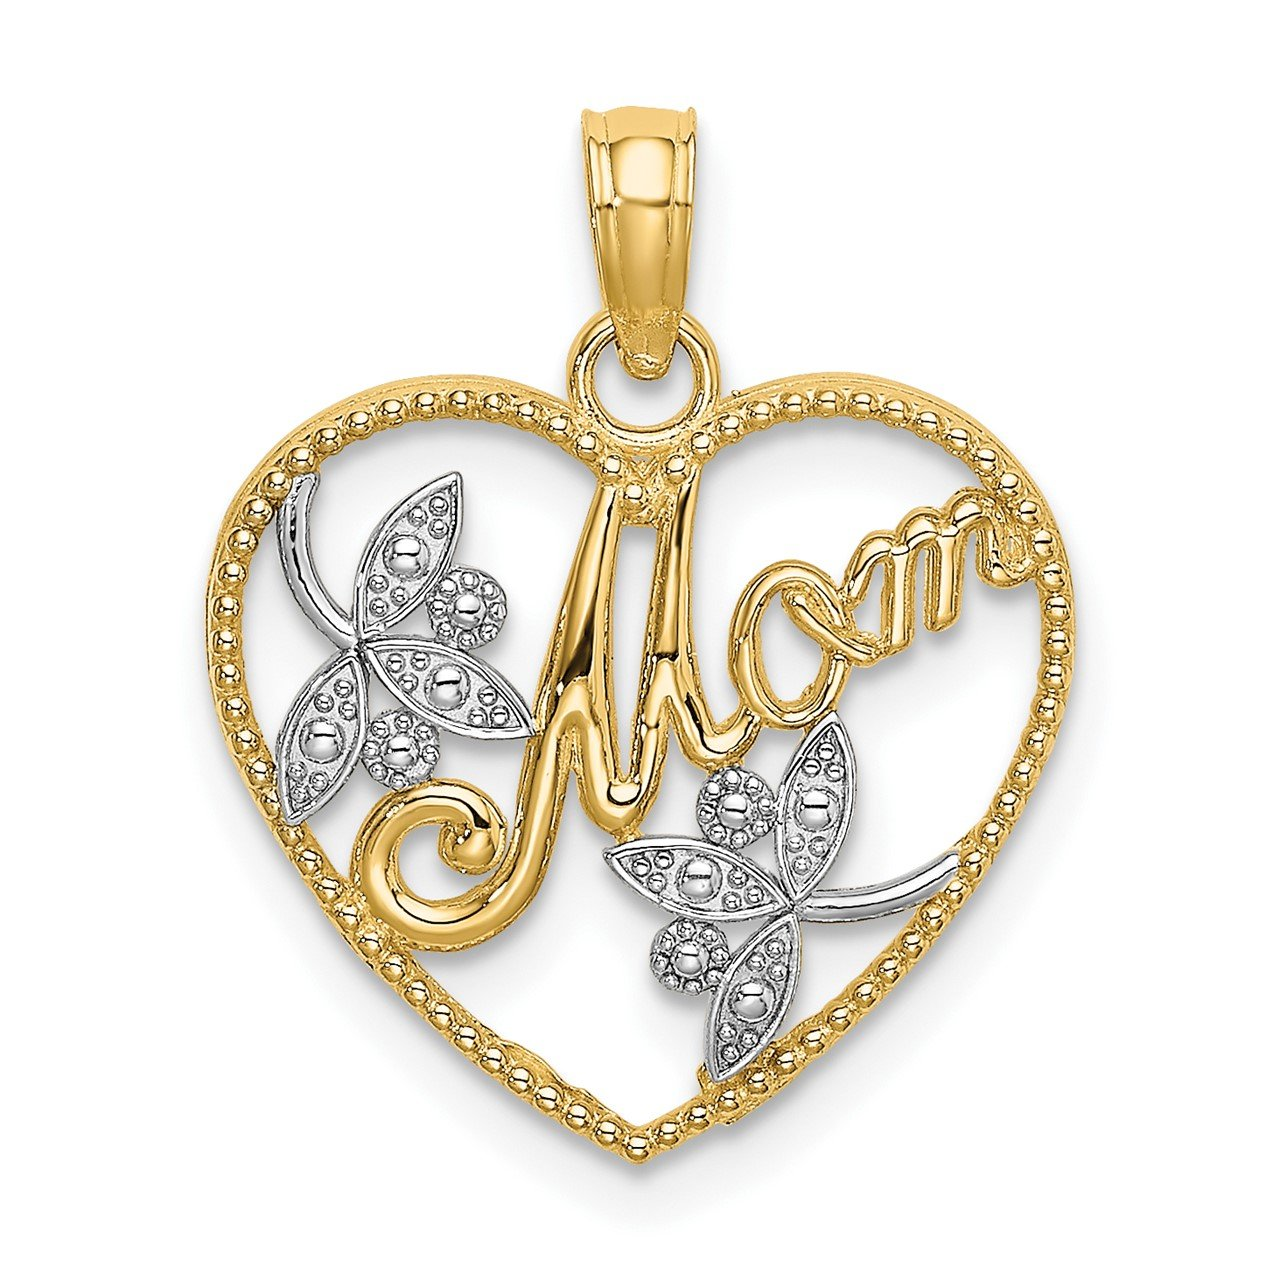 14k with Rhodium Textured Heart with MOM Charm